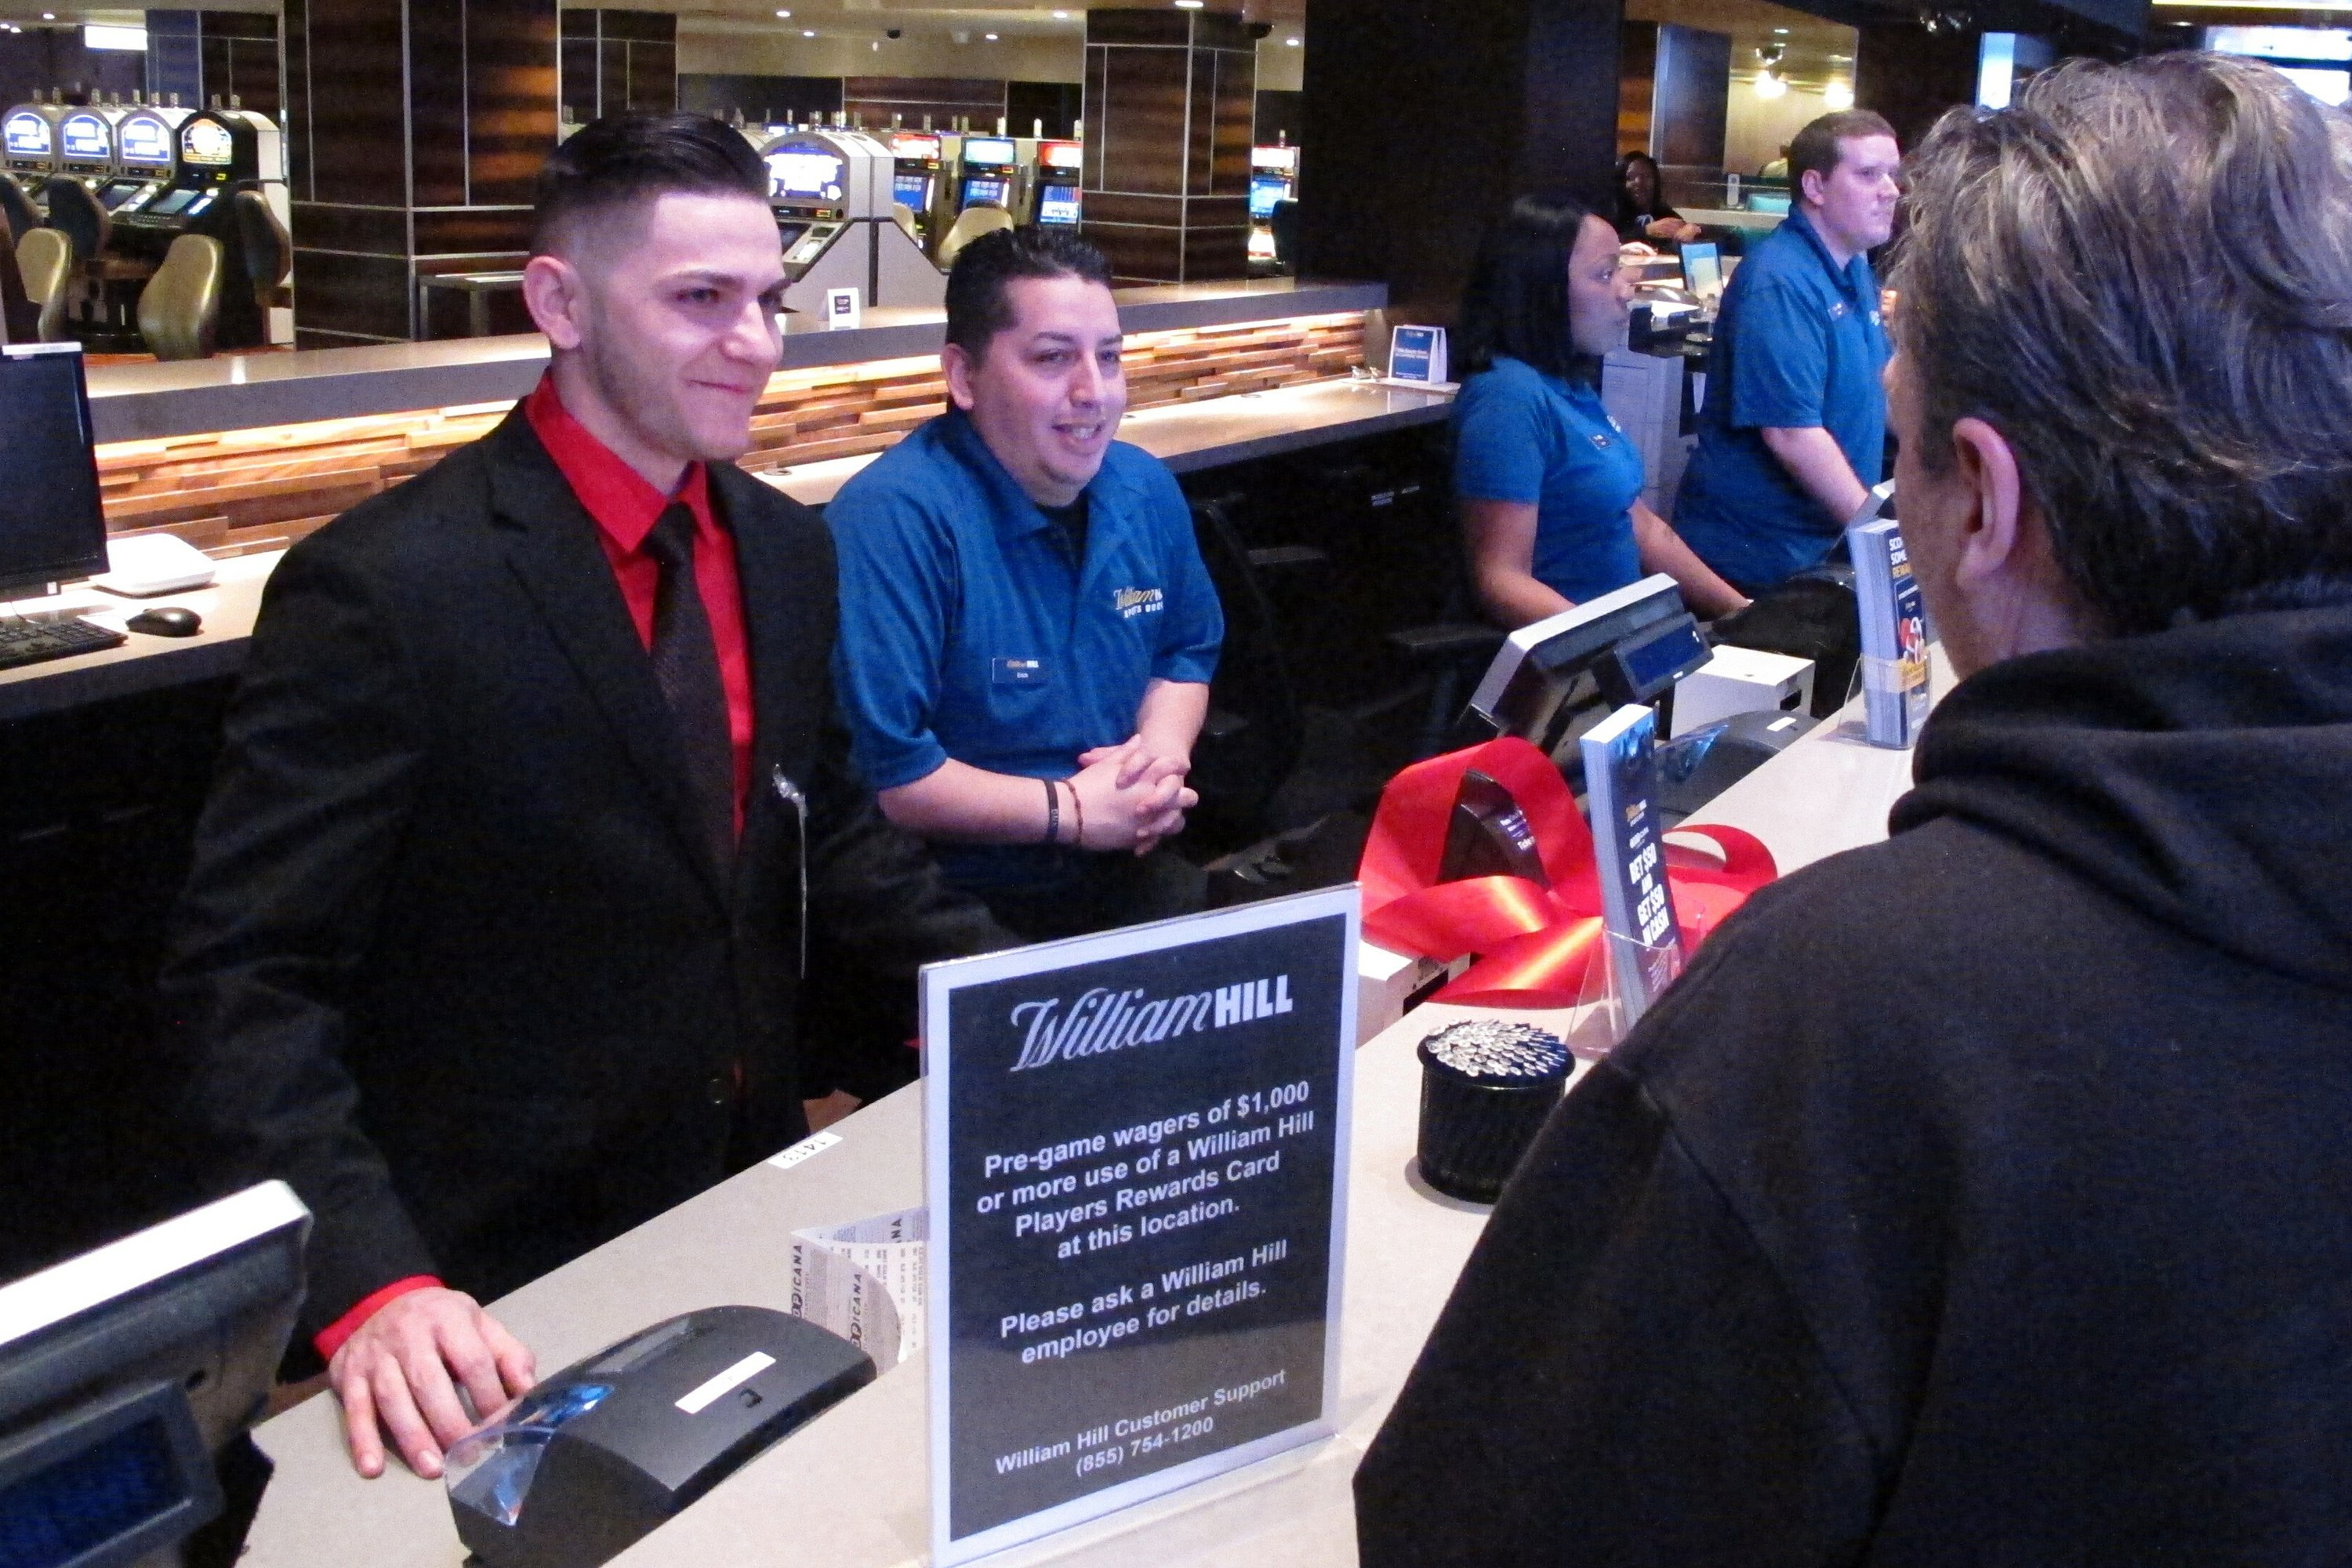 Caesars Entertainment buys bookmaker William Hill for $3.7B